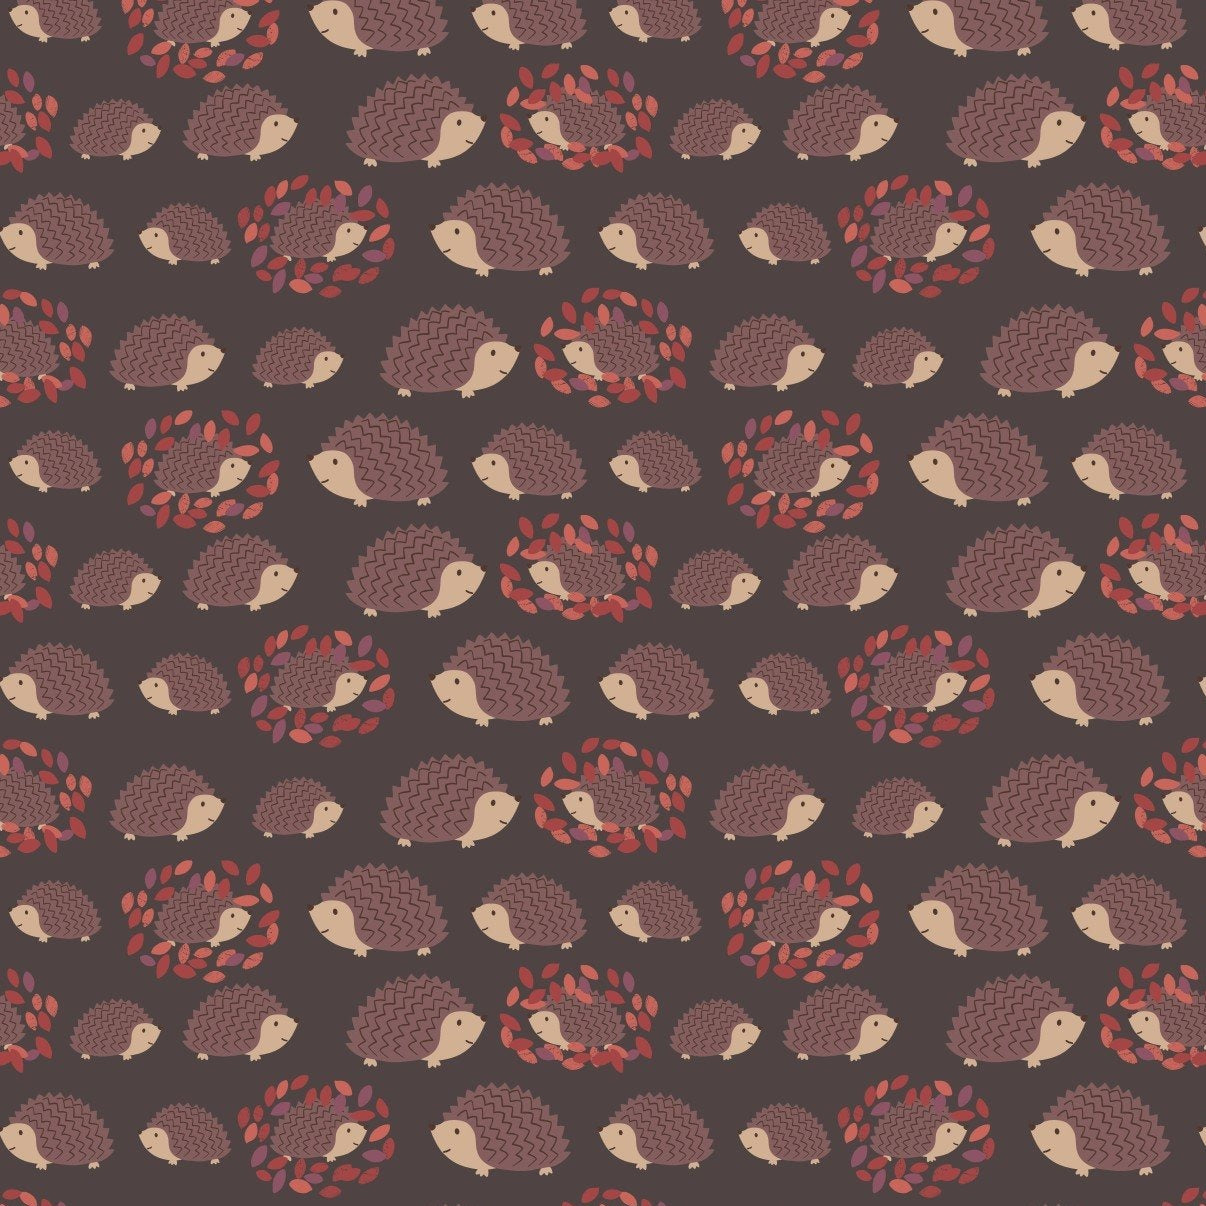 COTTON - Lewis & Irene - Hedgehog Family on Darkest Brown (1/2 yard)